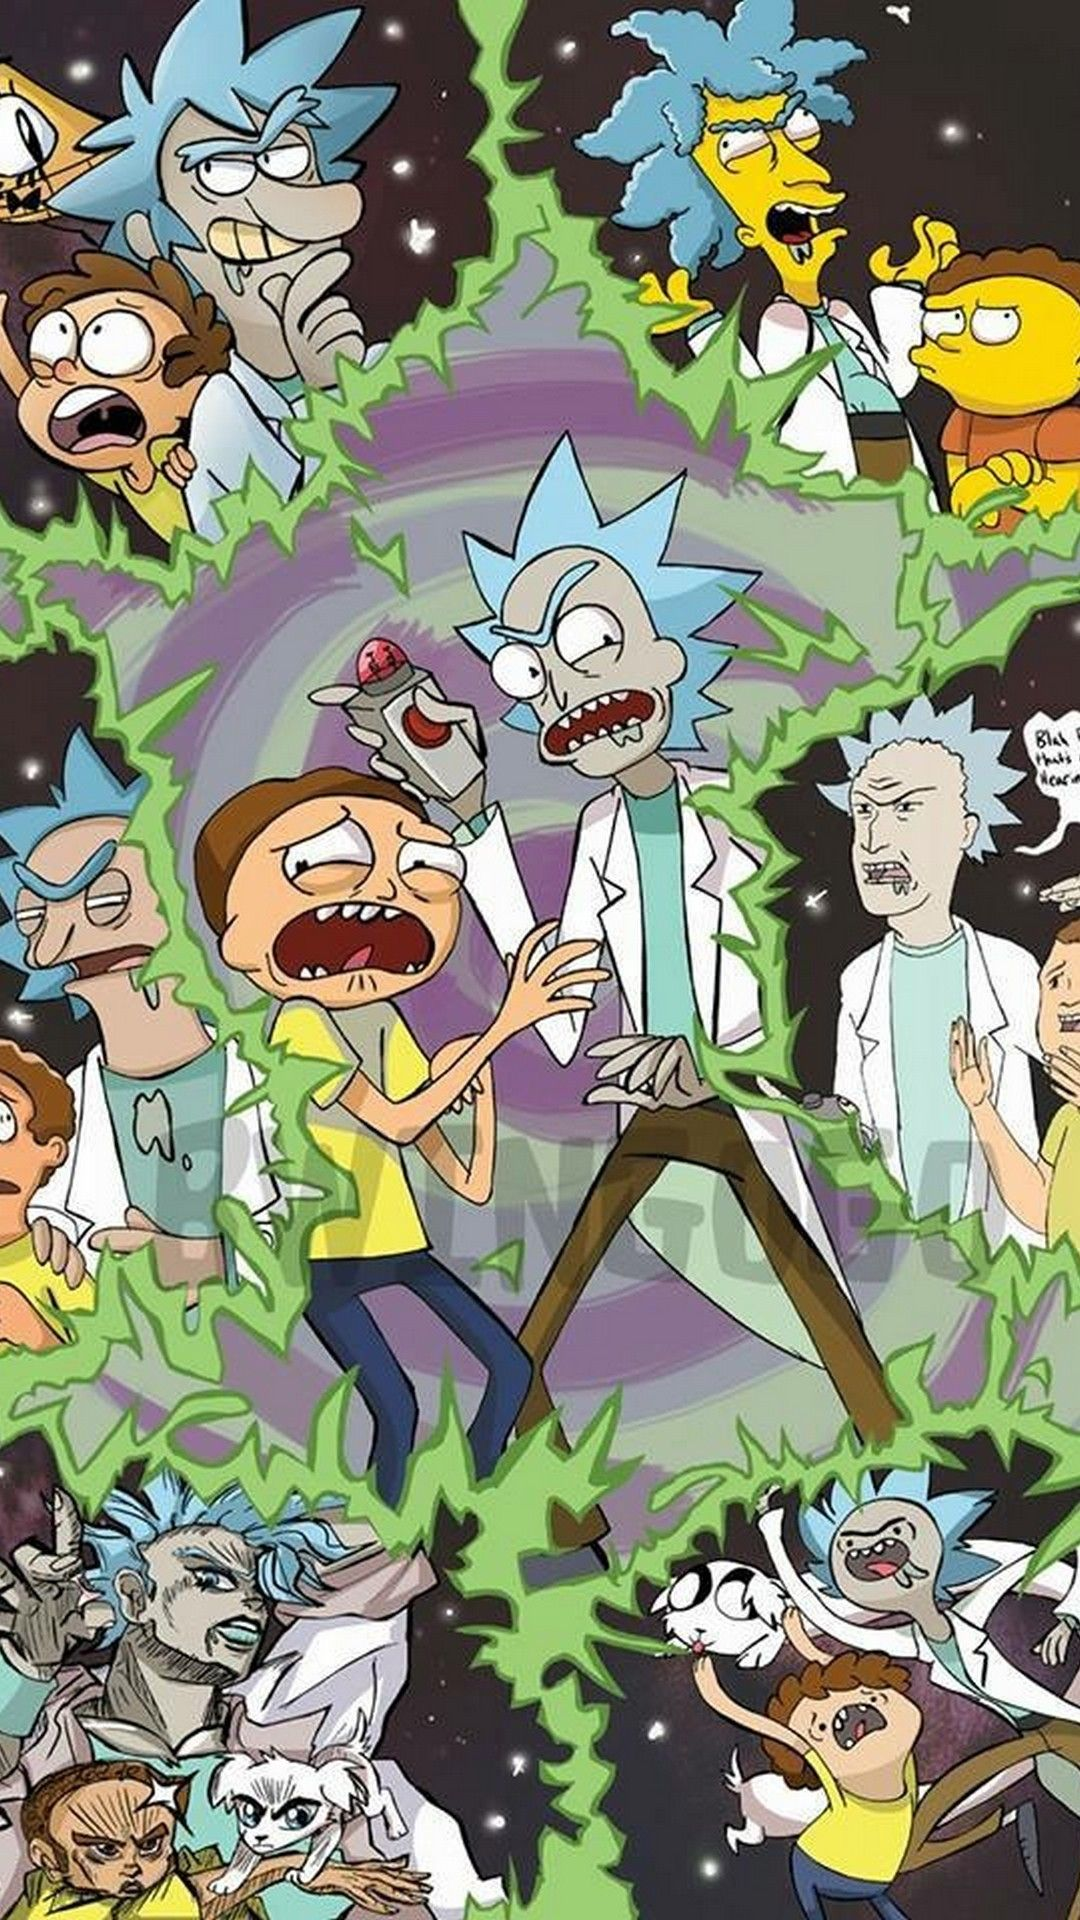 Rick And Morty Iphone Wallpaper Wallpapers Iphone 45 Rick And Morty Poster Rick And Morty Cartoon